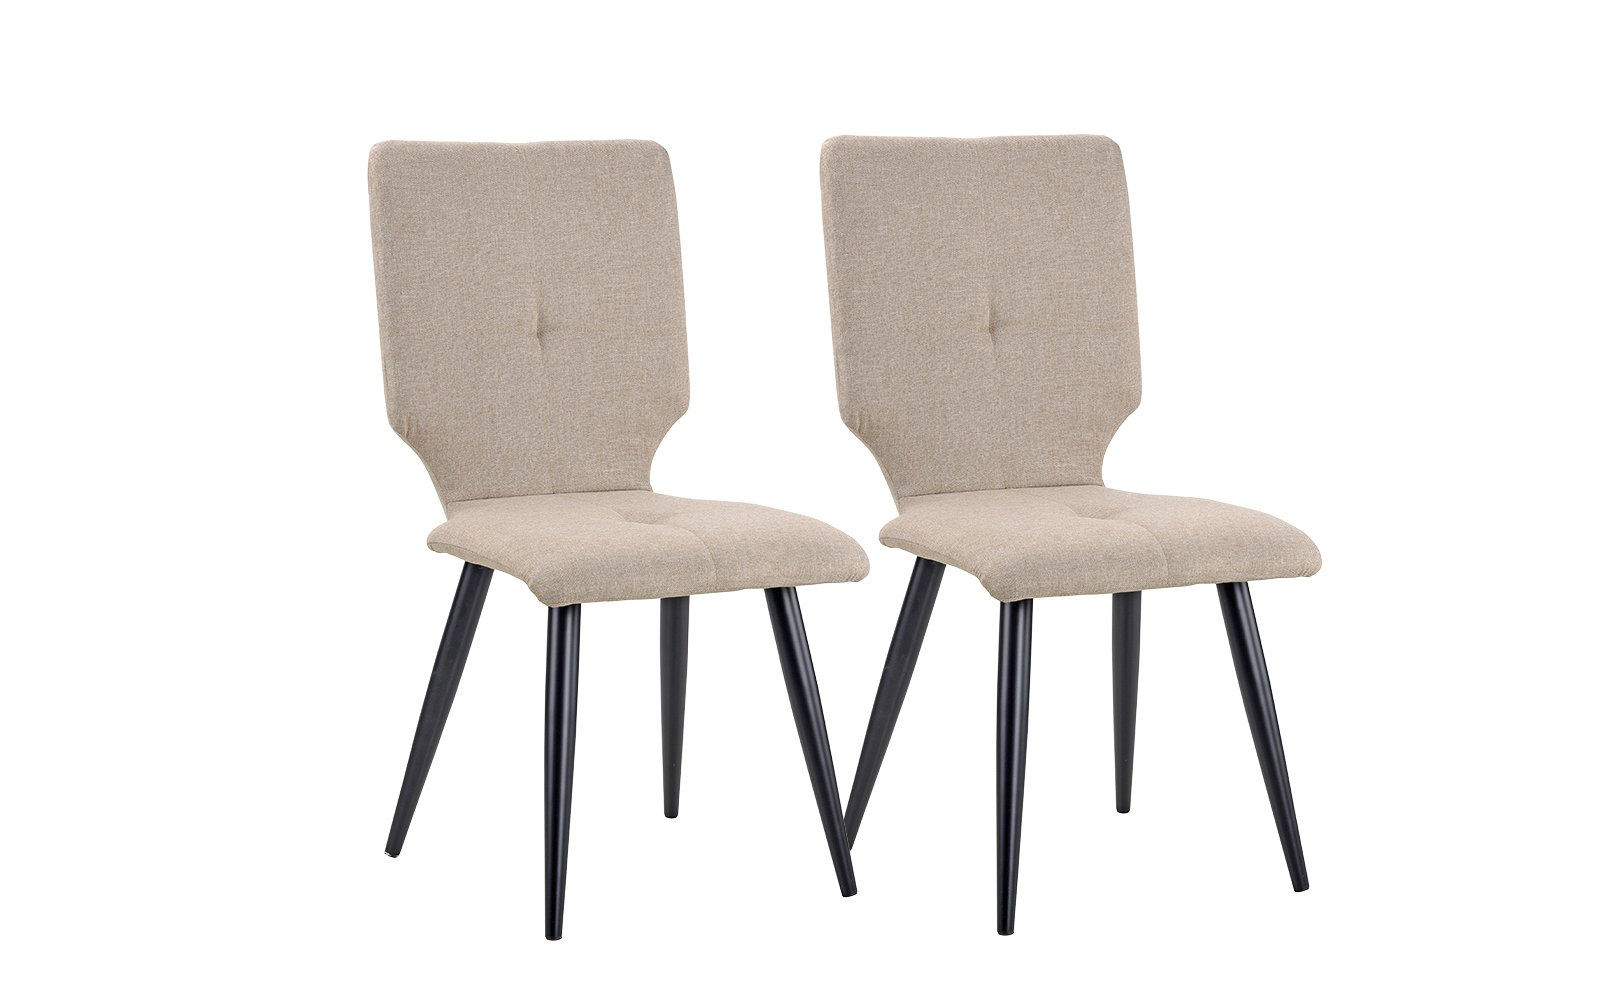 2 Pice Set of Linen Fabric Upholstered Kitchen Dining Chairs (Beige)